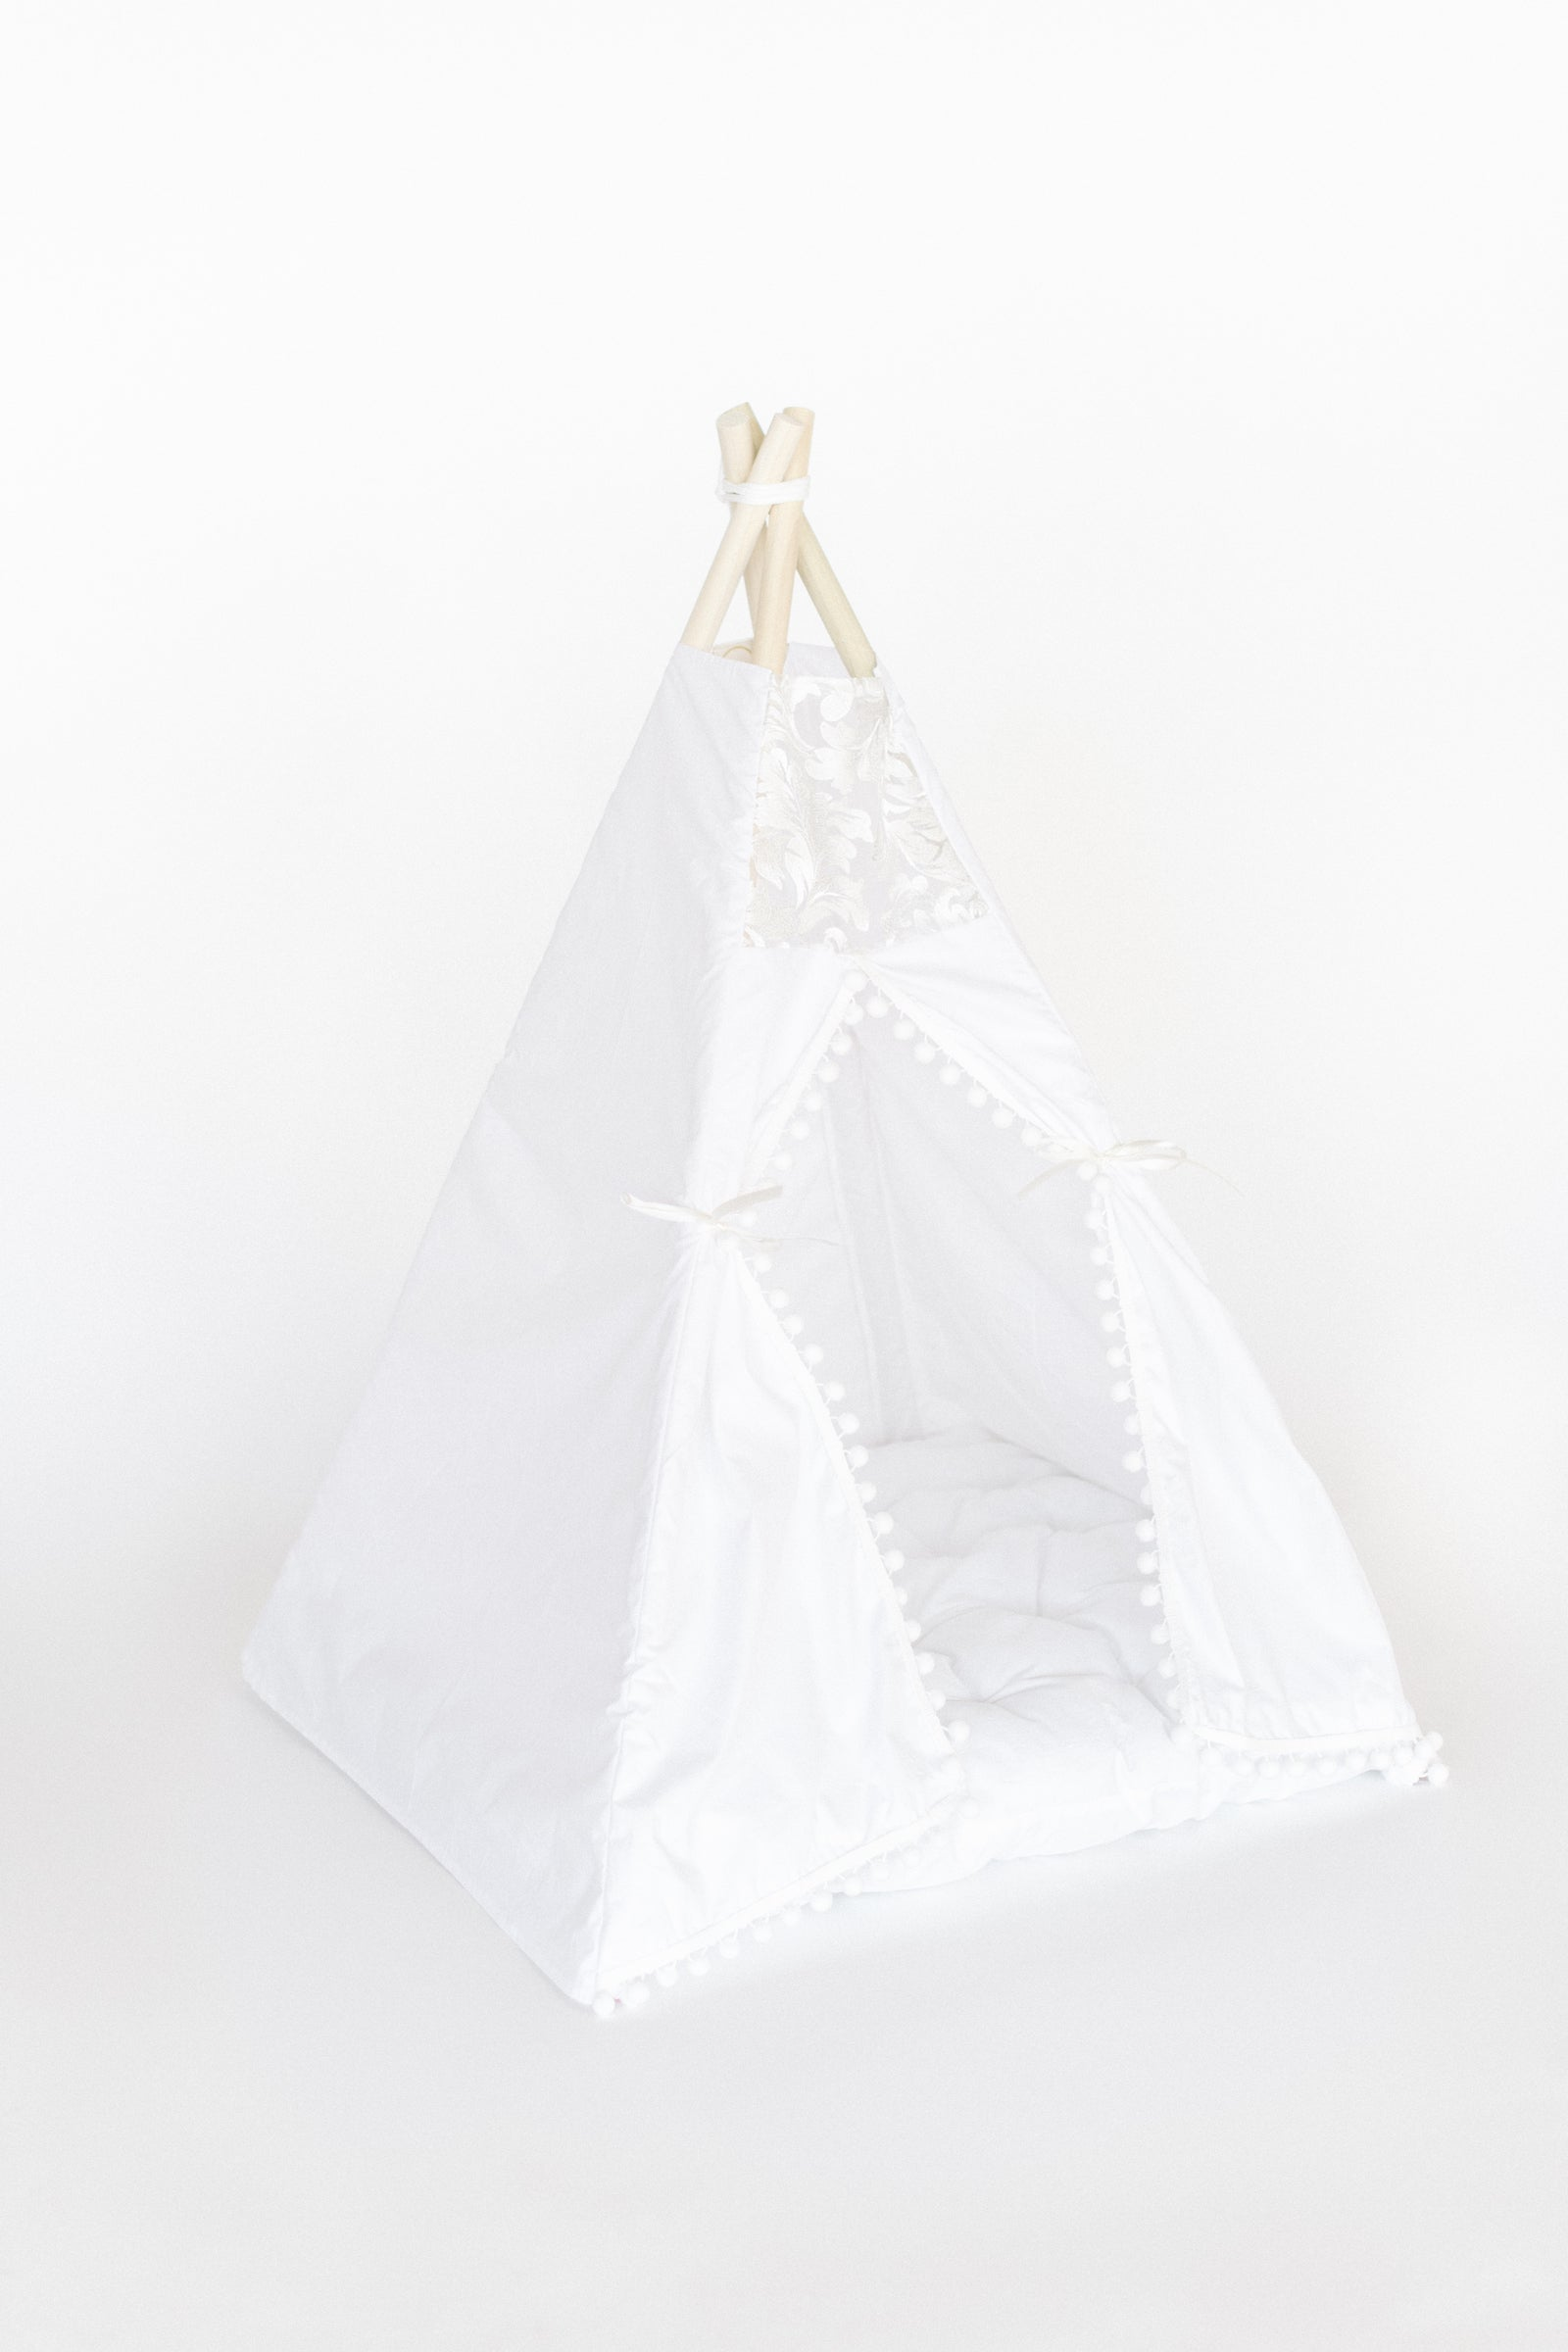 E & E Teepee: Evelyn Itty Bitty